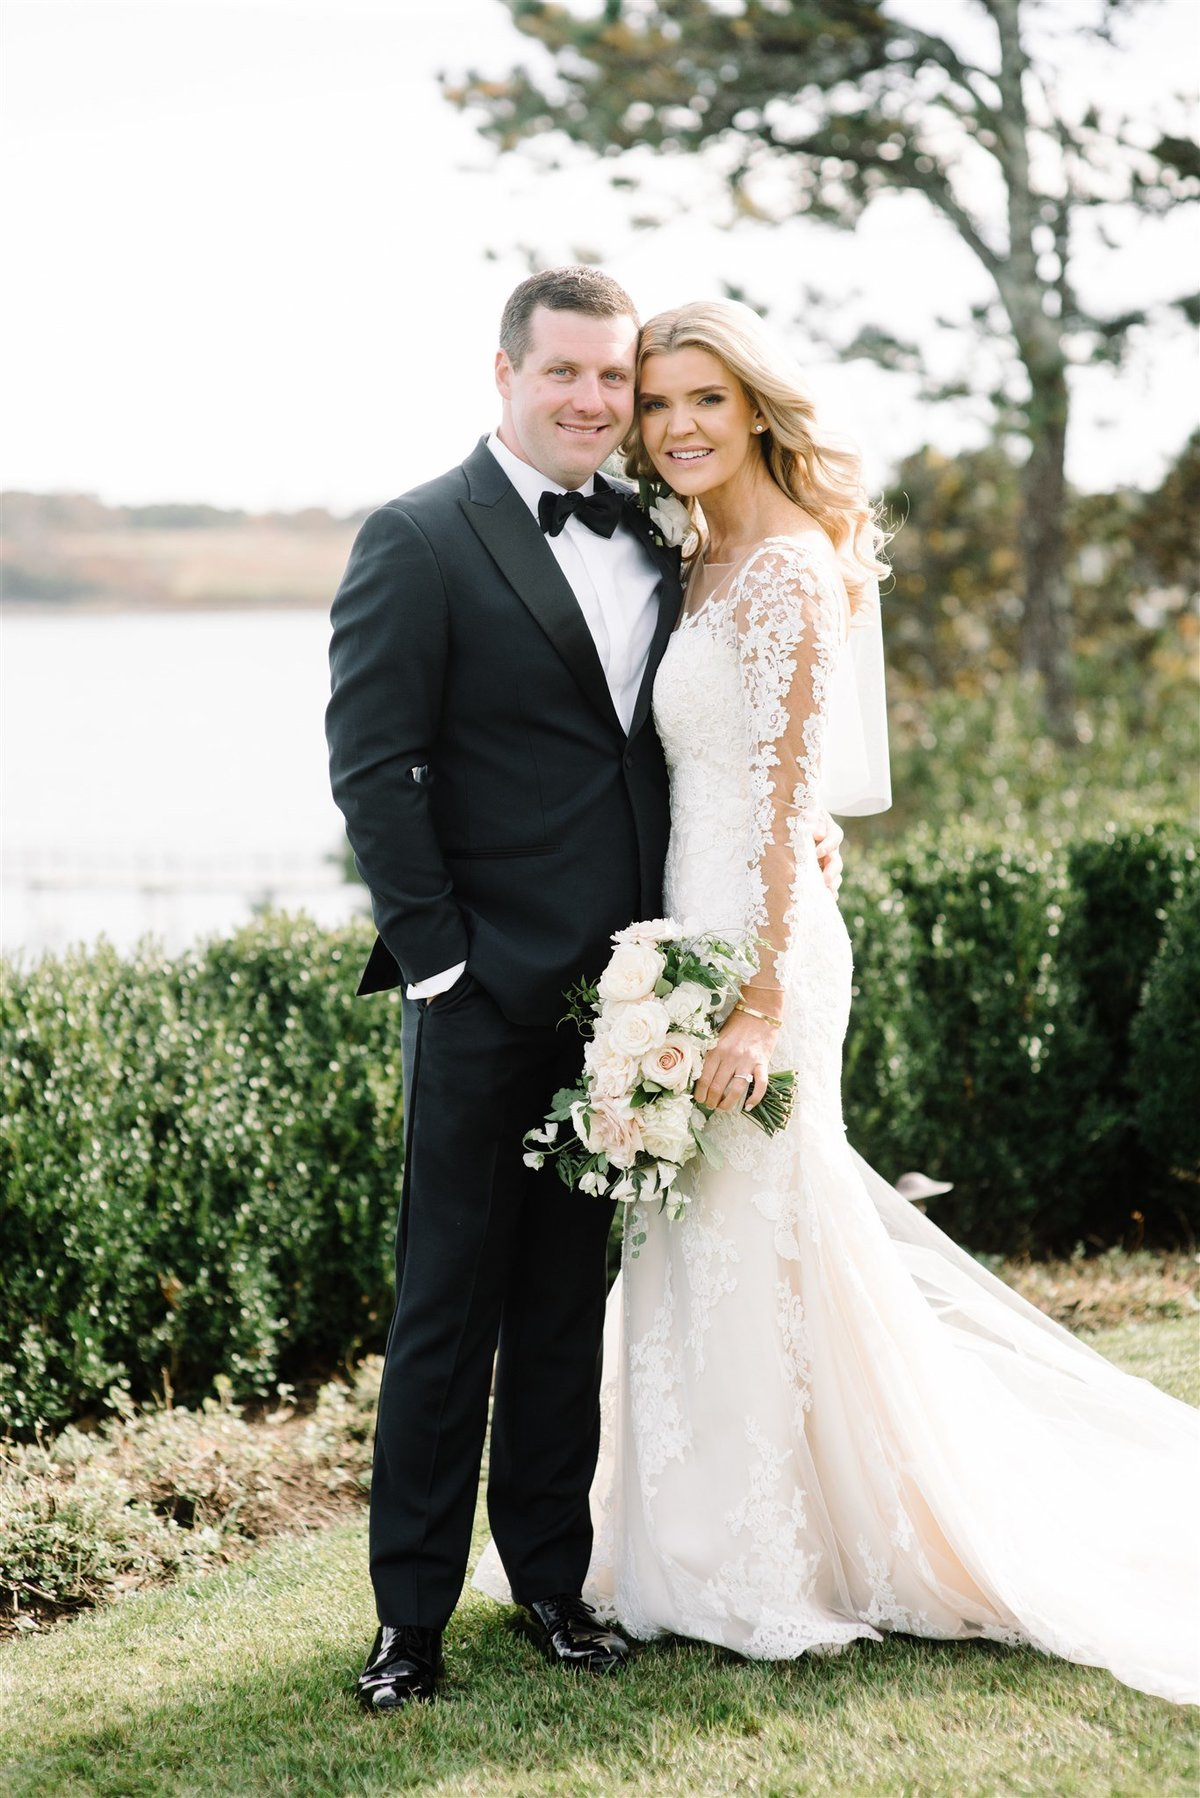 Black Tie high end wedding at Wequassett Resort for a Cape Cod Wedding by luxury Cape Cod wedding planner and designer Always Yours Events